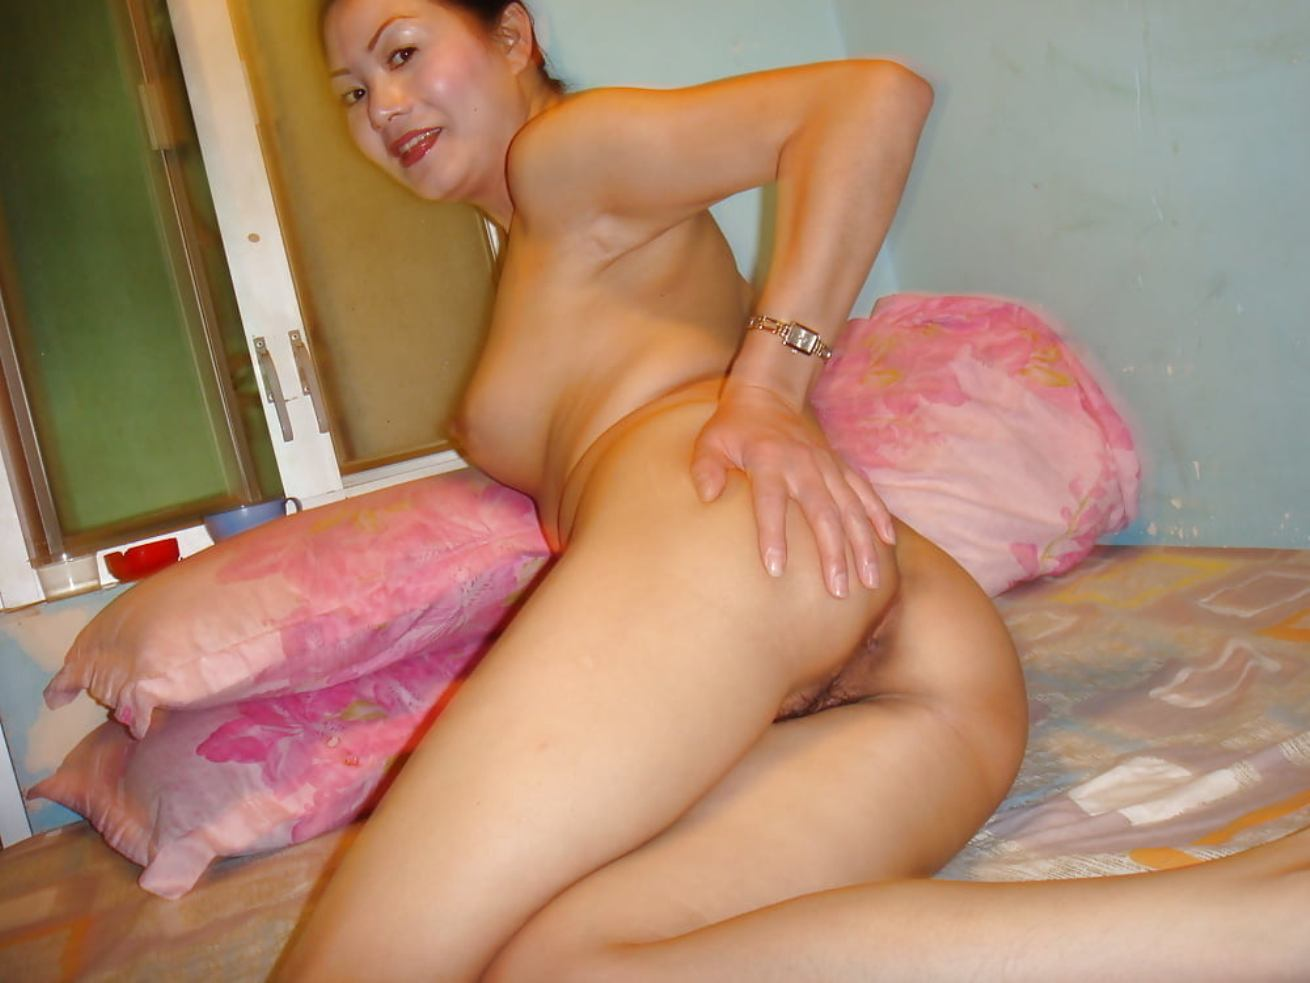 Mature asian slips off panties on her way to posing naked. Amateur Asian MILF shows her nude ass on xxx picture